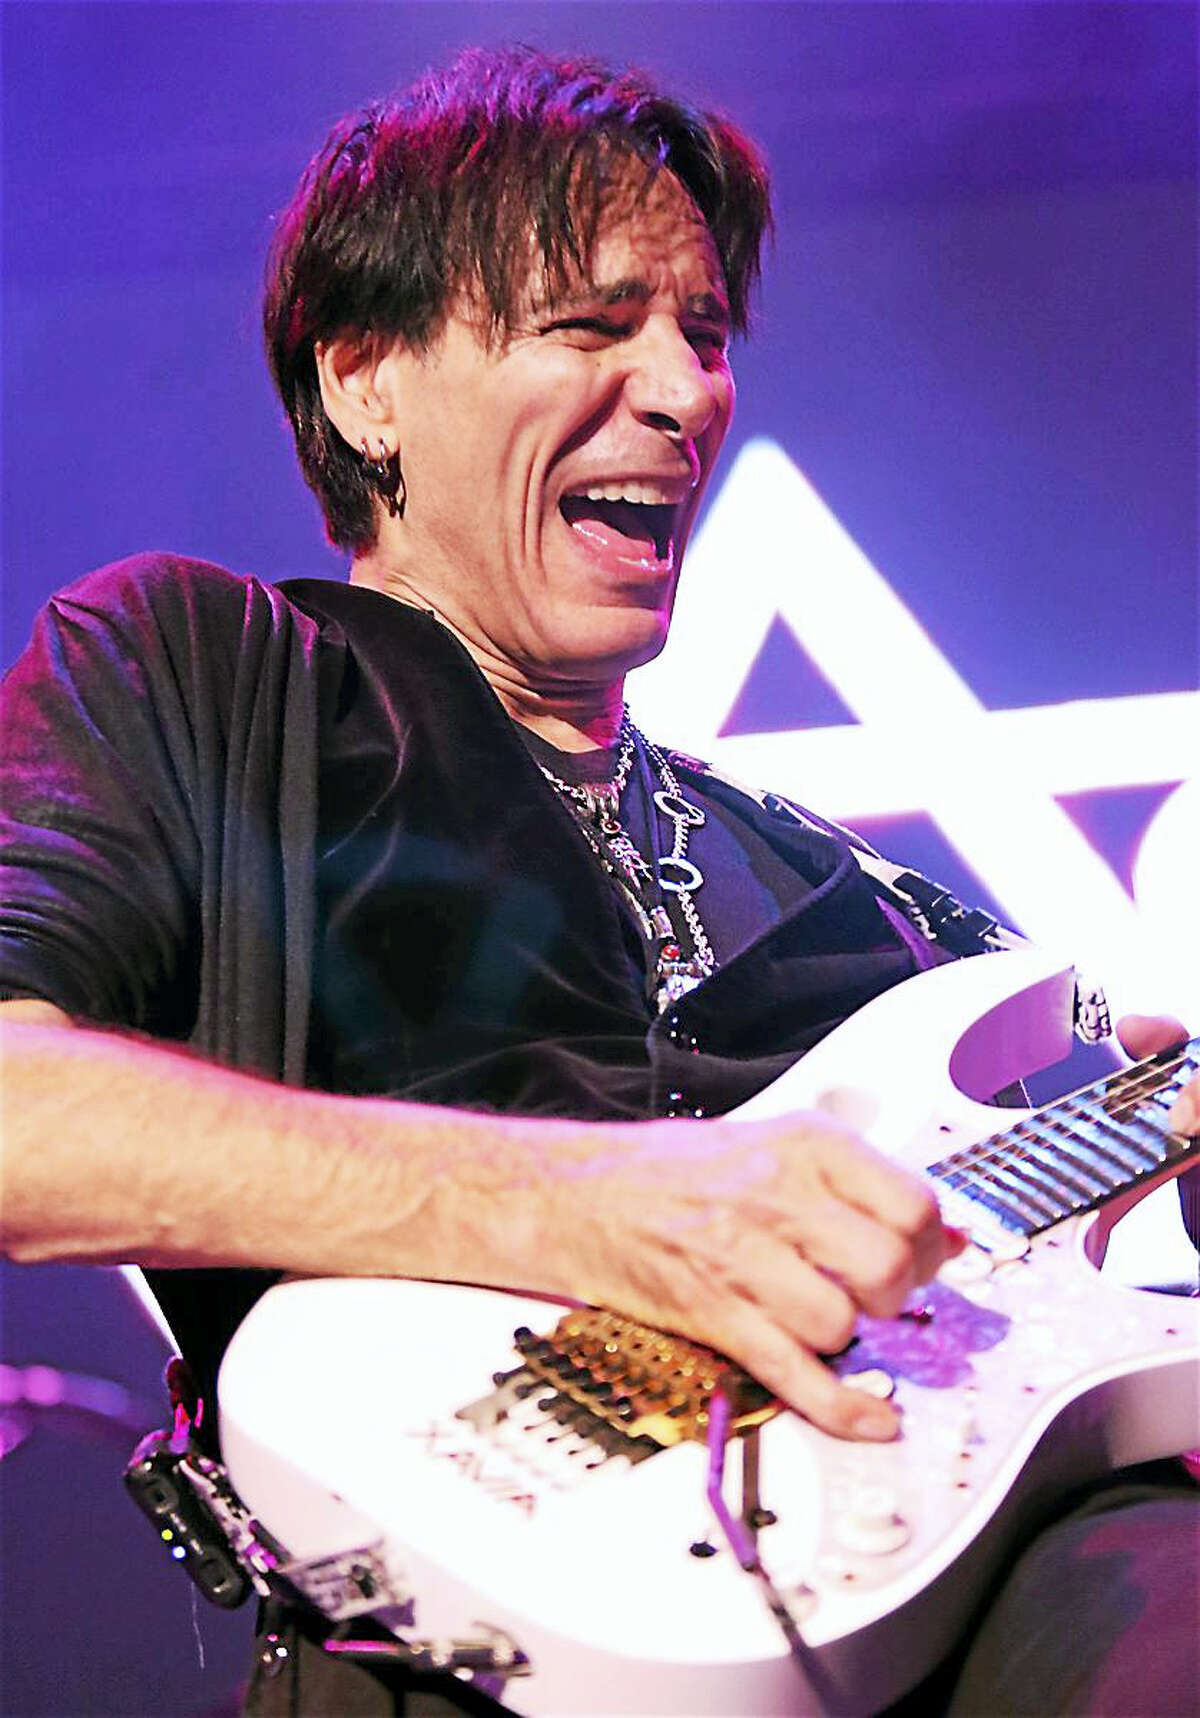 """Guitarist, singer, songwriter and producer Steve Vai is shown performing on stage to a sold-out crowd of fans at the Ridgefield Playhouse in Ridgefield on Nov. 7. He was voted the 10th """"Greatest Guitarist"""" by Guitar World magazine, and has sold over 15 million records during his nearly 40 years of making music. To learn more about this extraordinary guitarist, visit www.vai.com"""